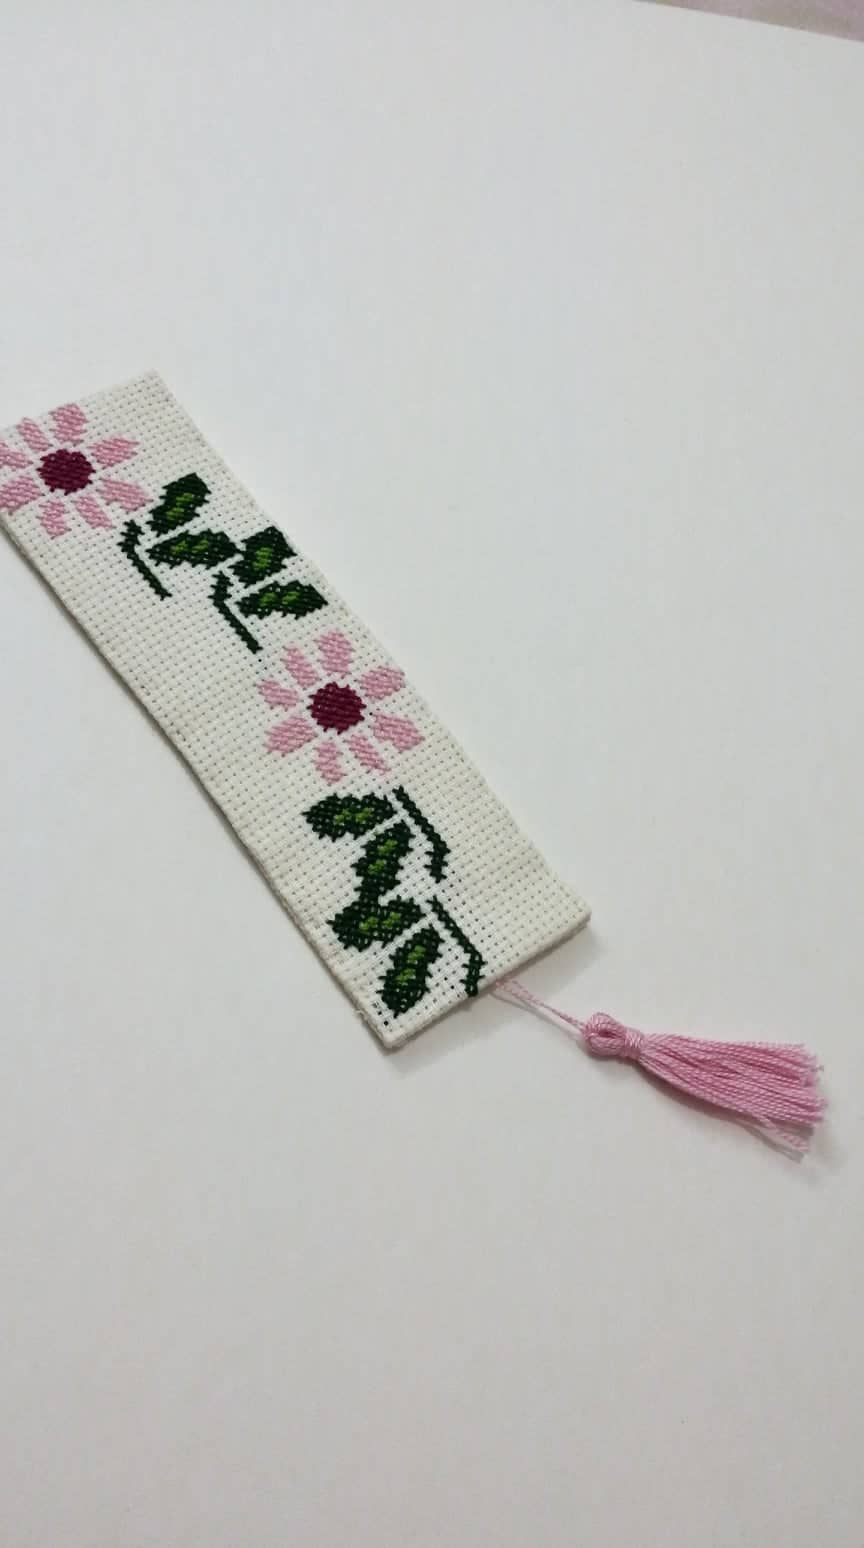 Off white bookmark with pink and green embroidery - Falastini Brand